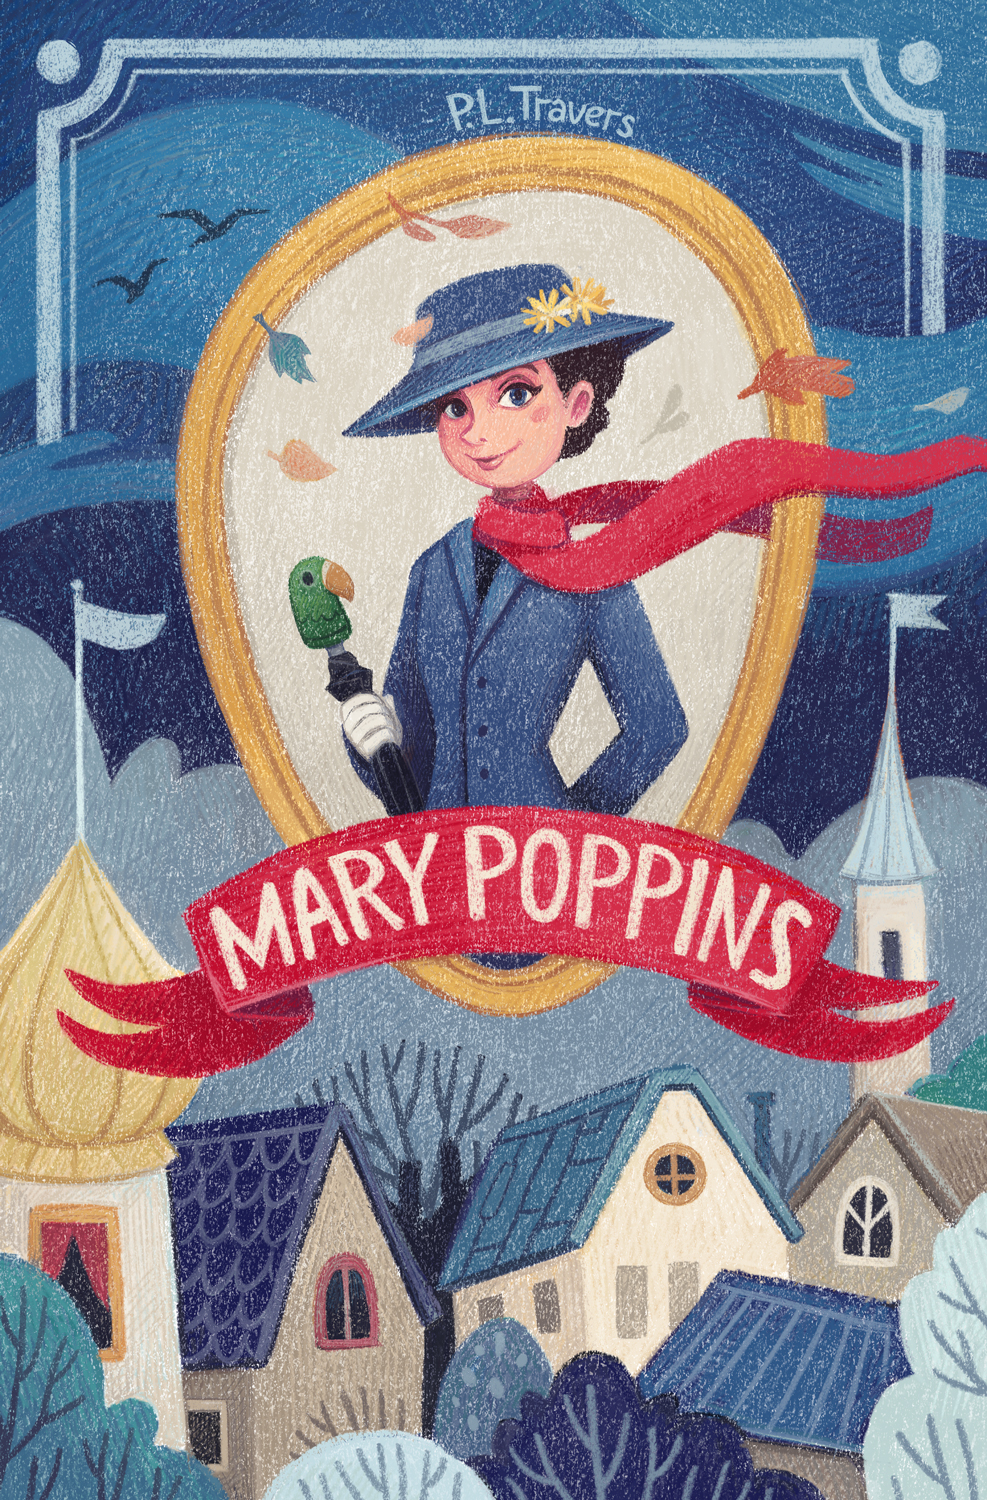 Mary Poppins children's book cover by Margarita Levina